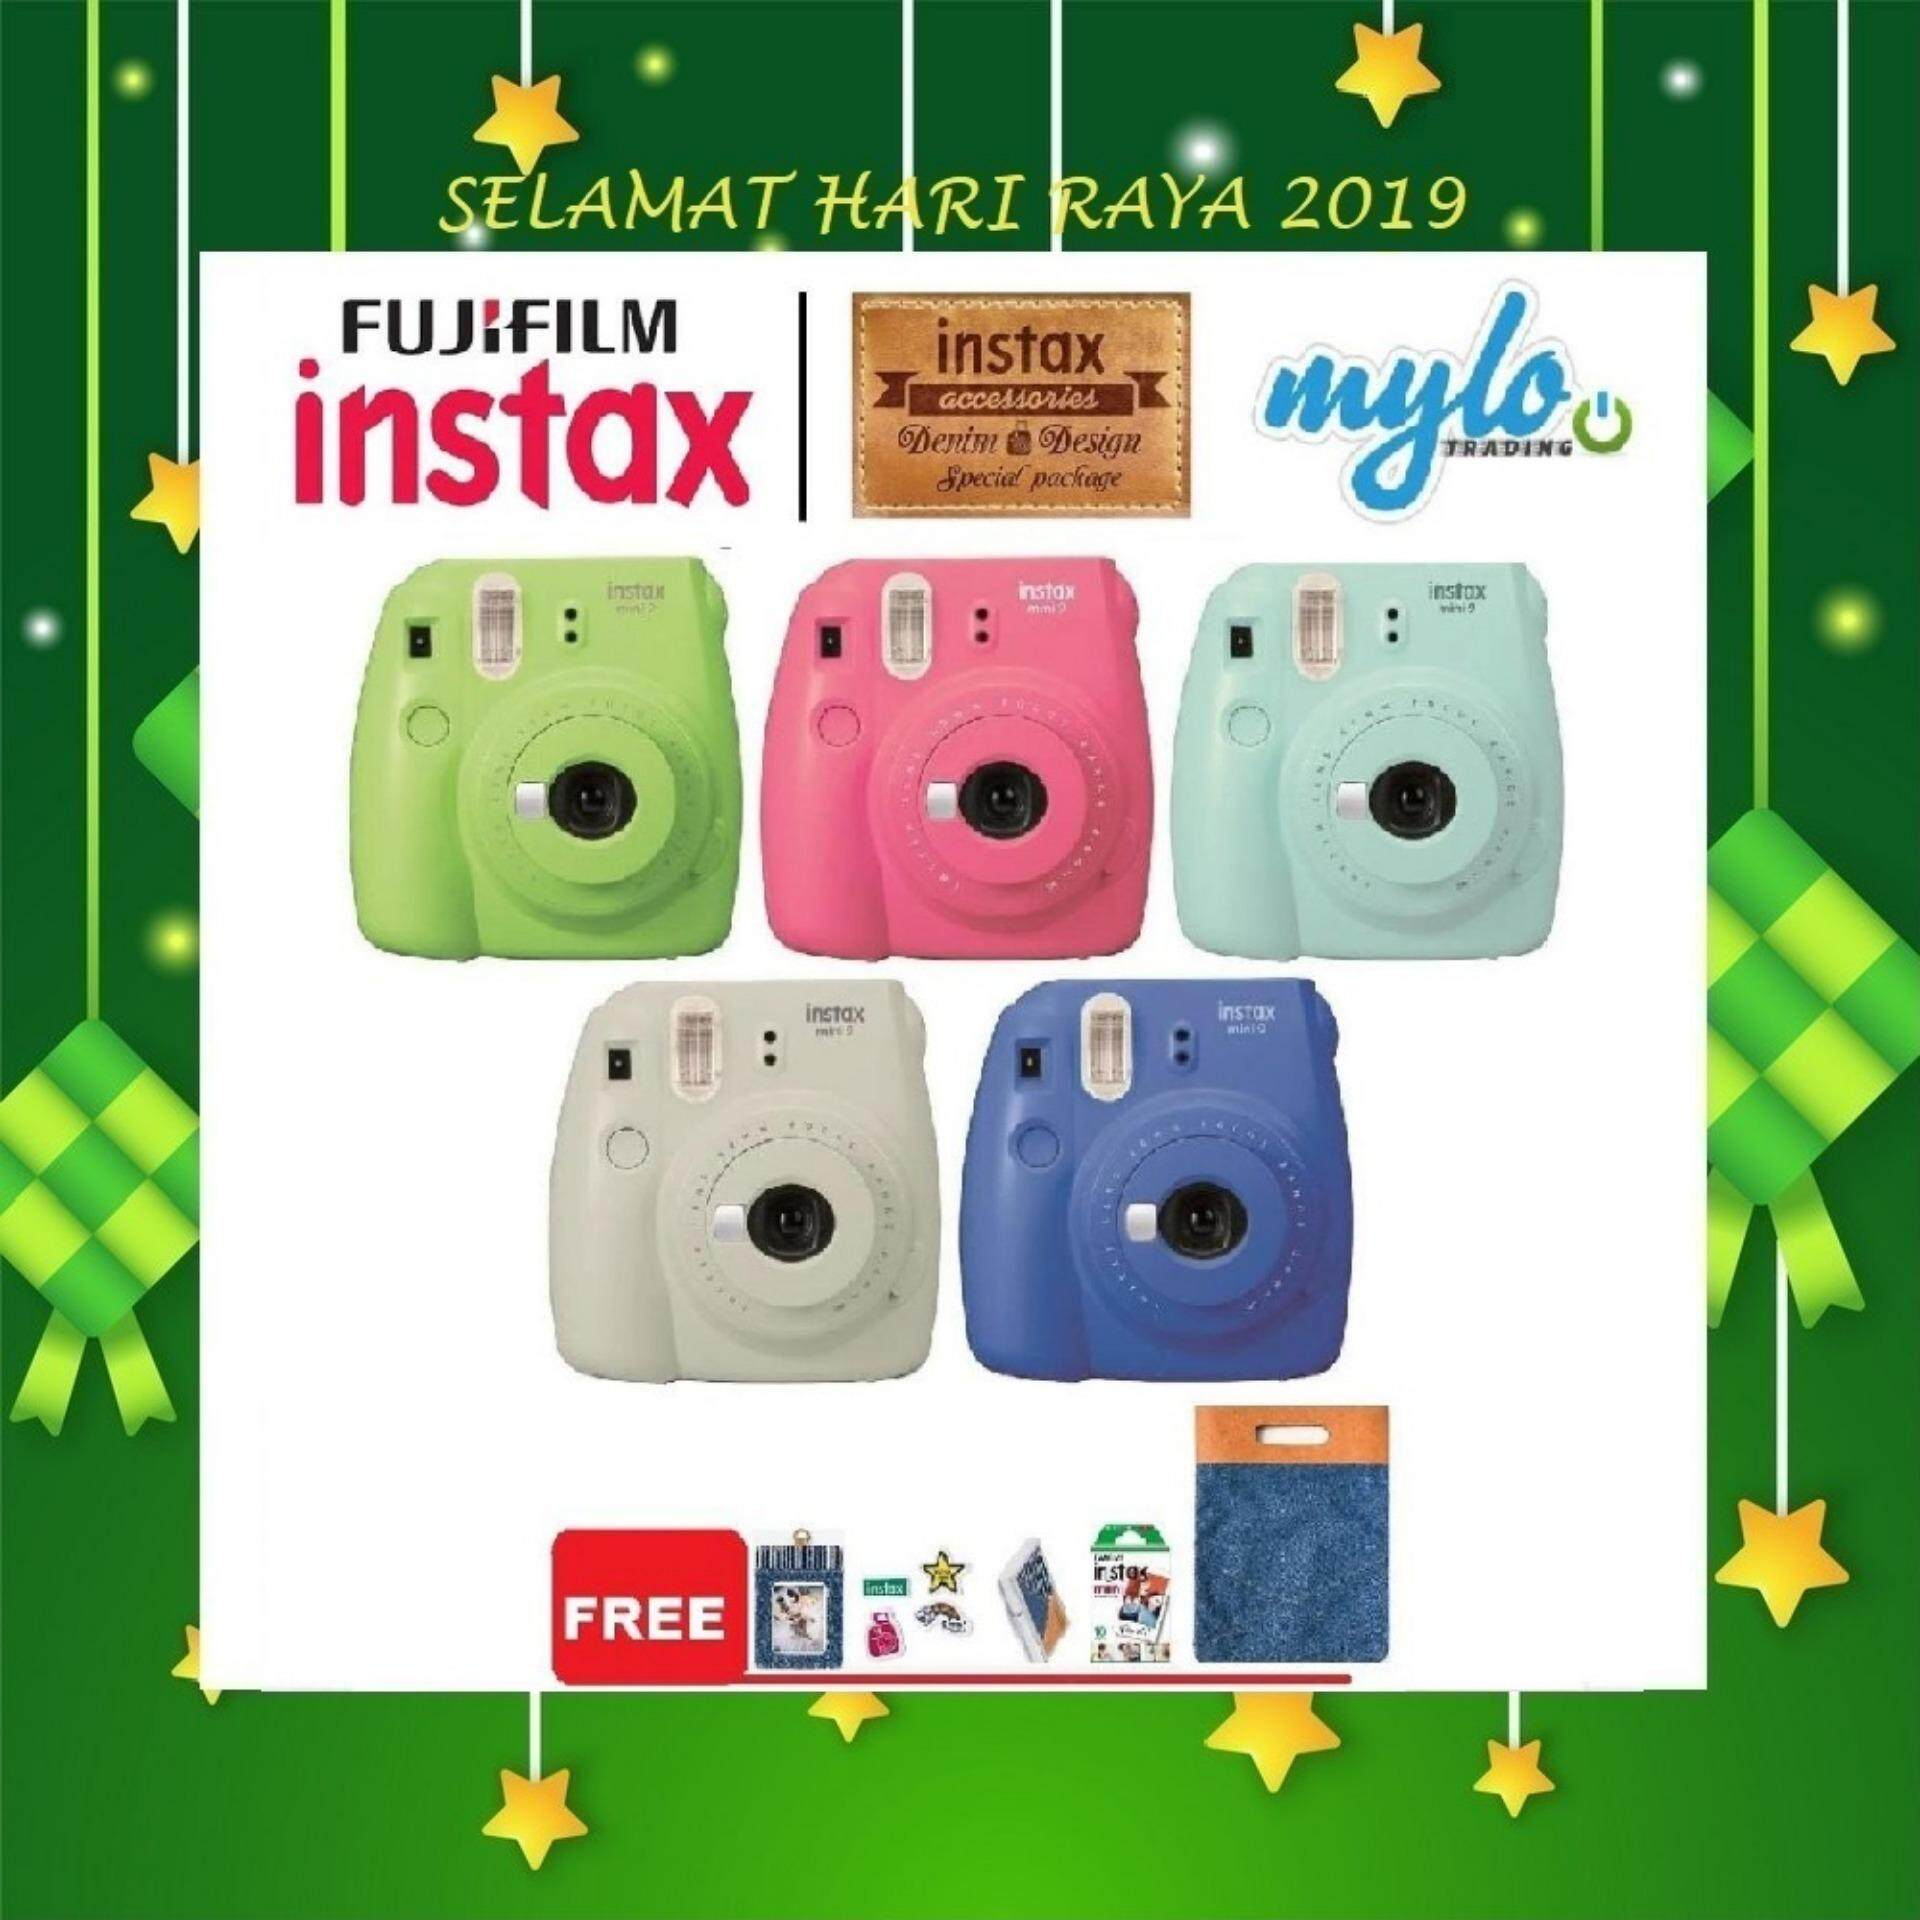 Fujifilm Instax Mini 9 Denim Package (buy 1 Free 5 Bundle) By Mylo Trading Online Store.